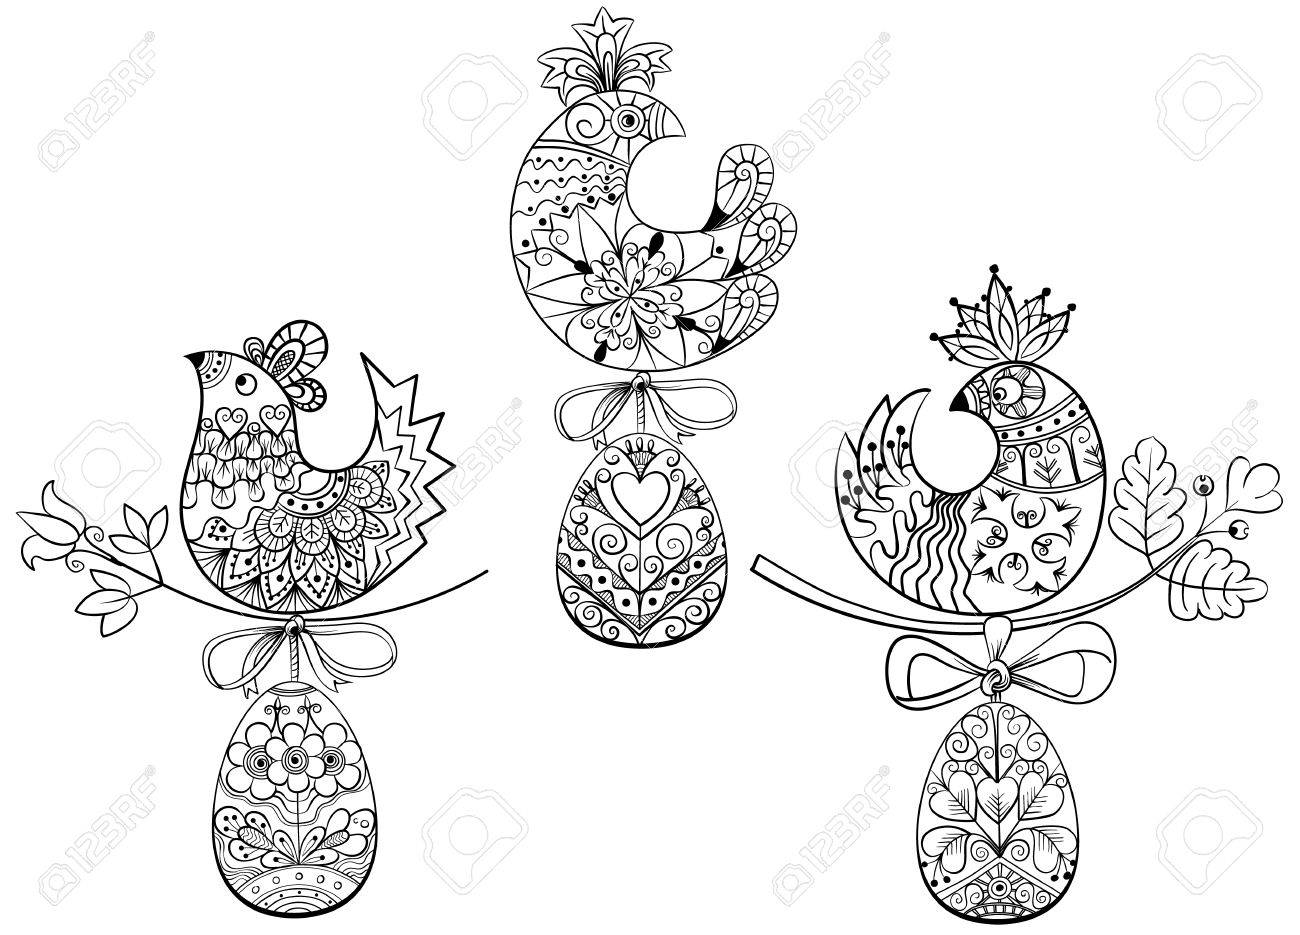 74 easter coloring page stock illustrations cliparts and